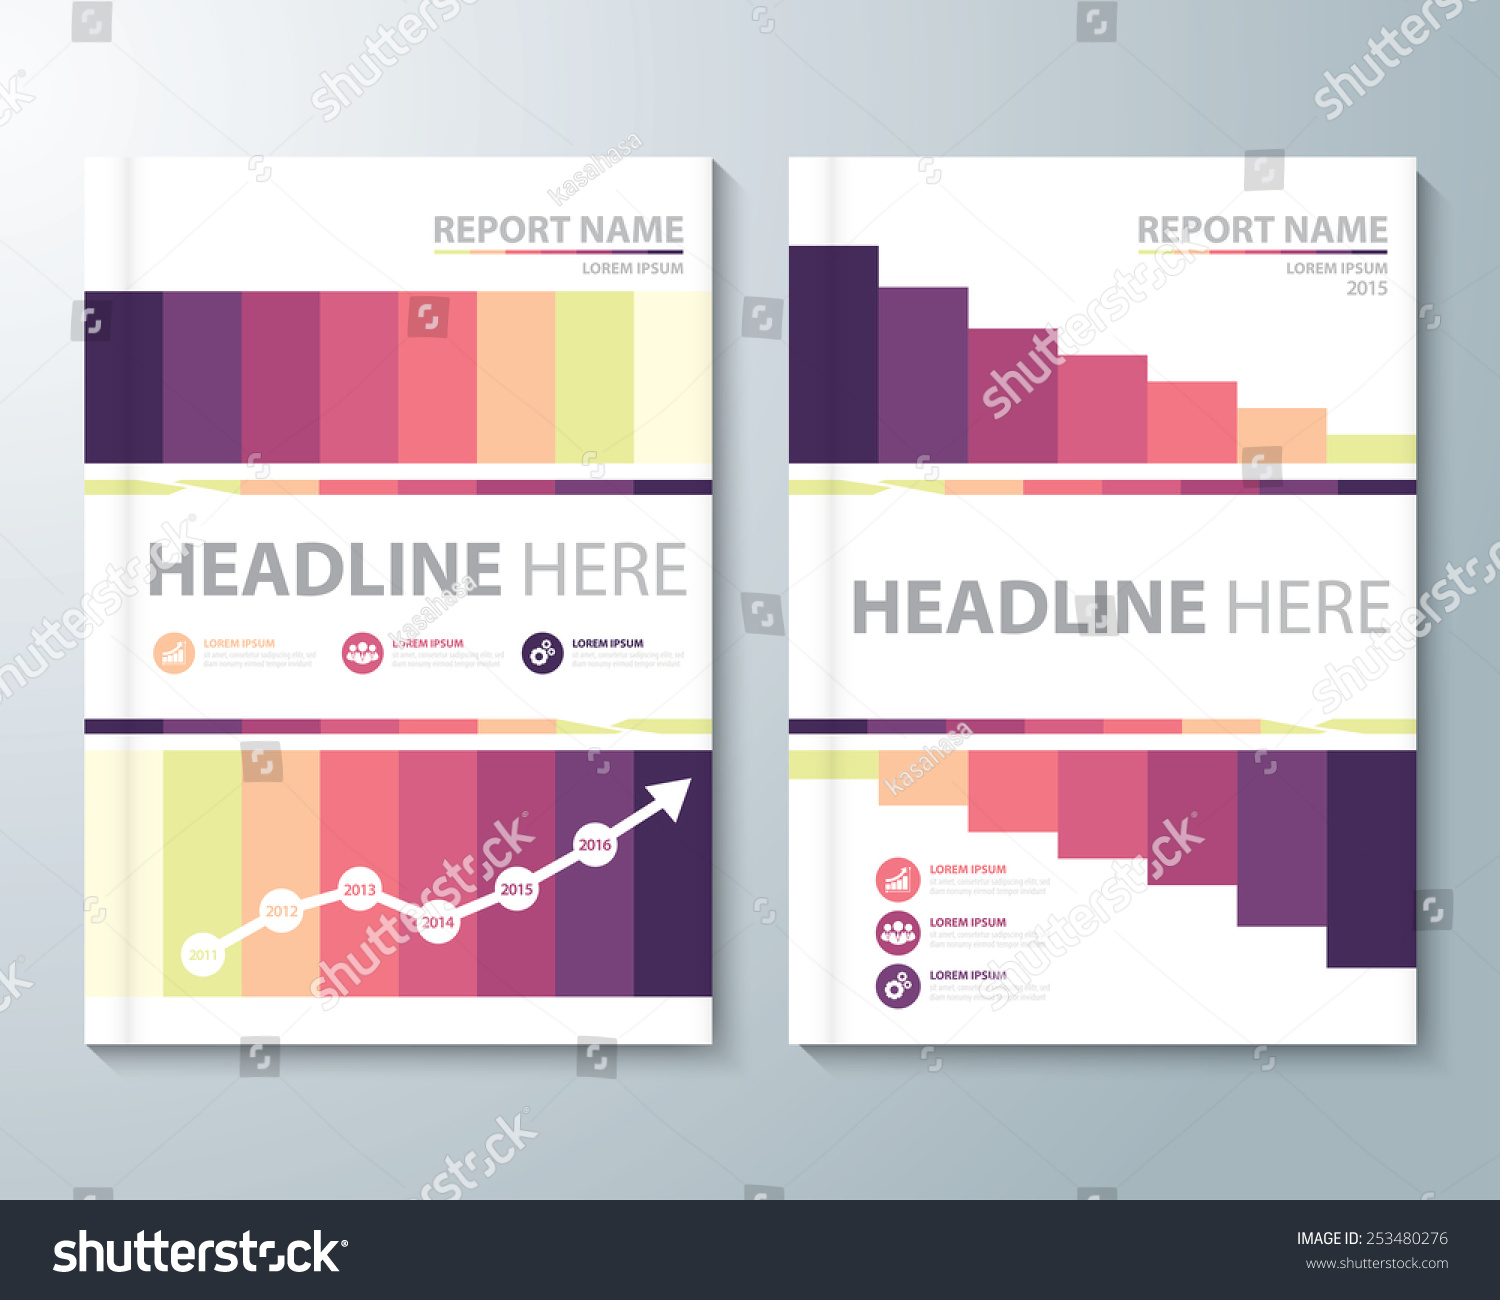 abstract retro background cover design template layout in a size cover design template layout in a4 size for annual report brochure preview save to a lightbox